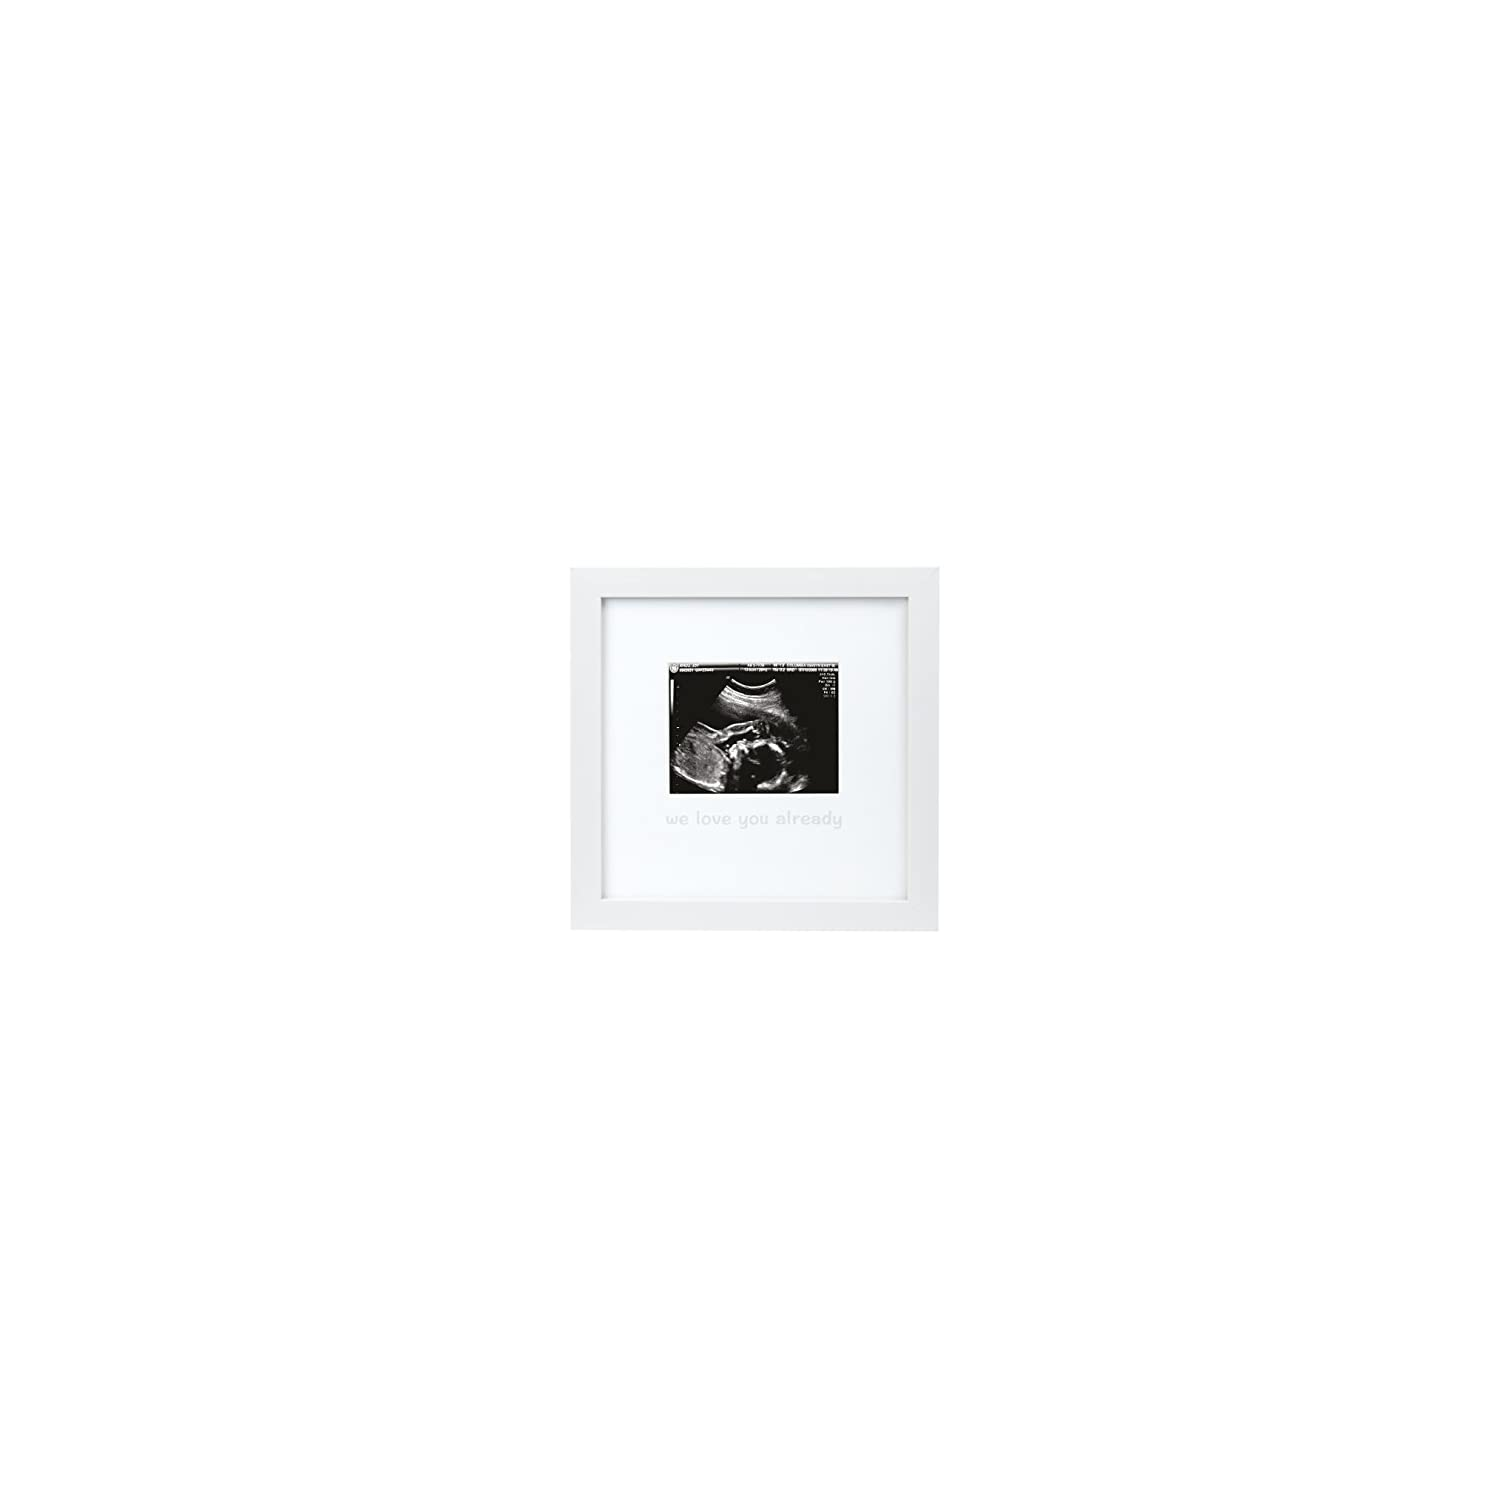 Tiny Ideas We Love You Already Sonogram Keepsake Photo Frame, White